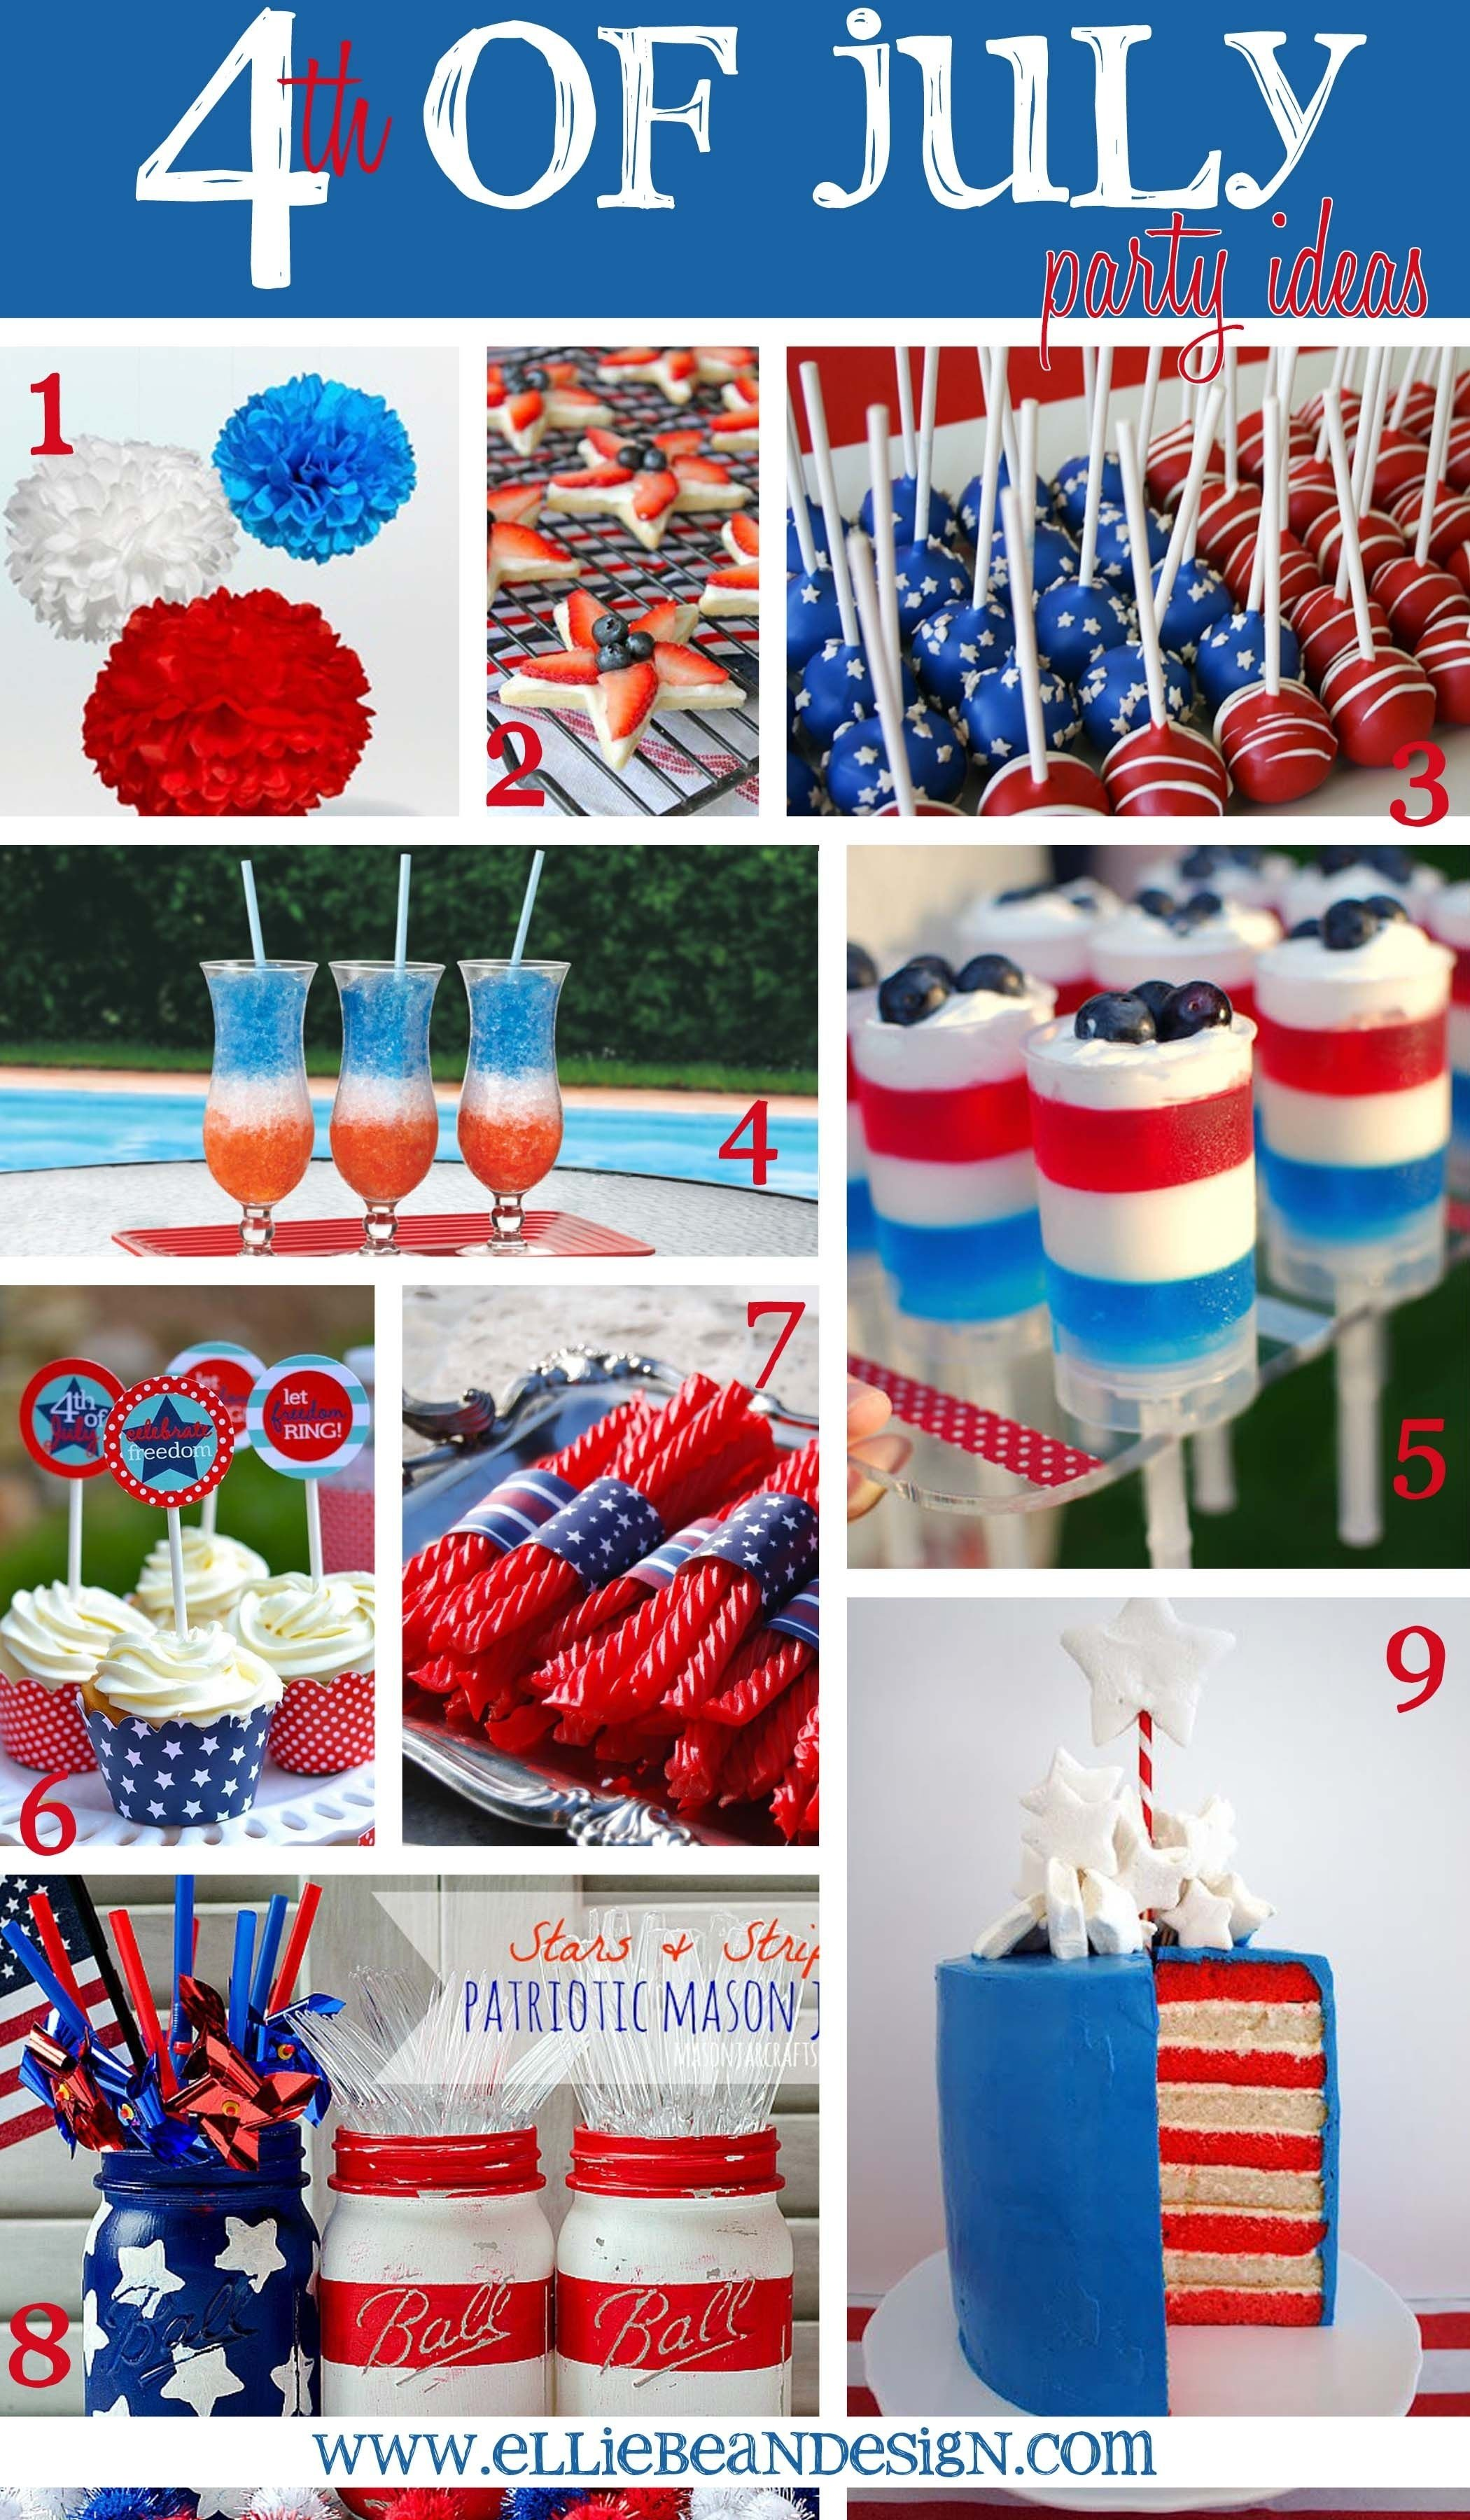 4th of july party ideas www.elliebeandesign | holidays